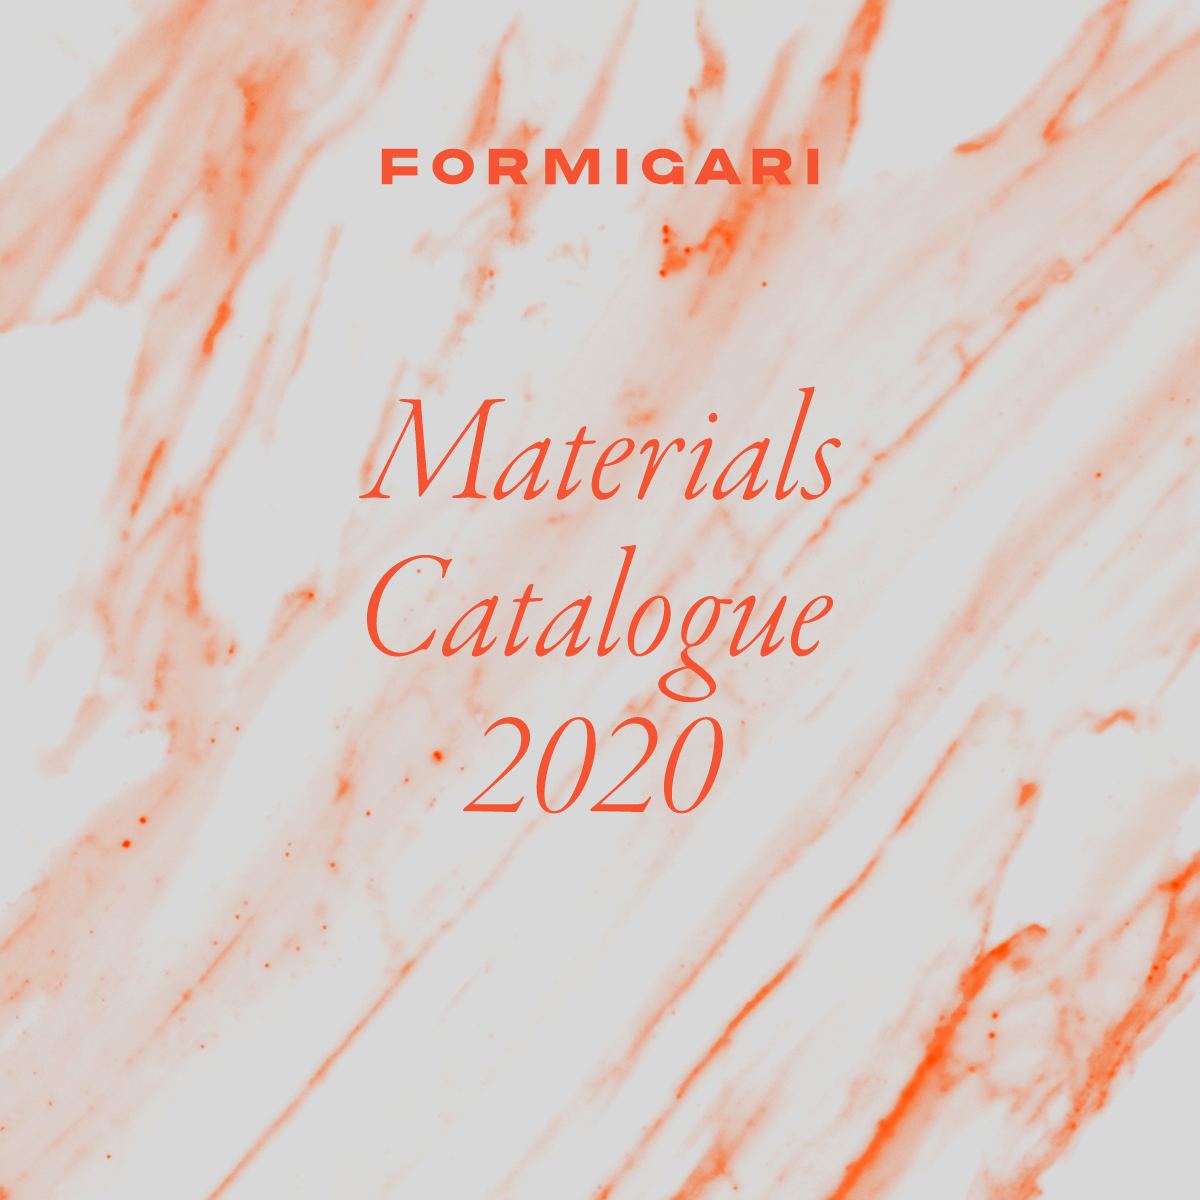 Materials Catalogue 2020